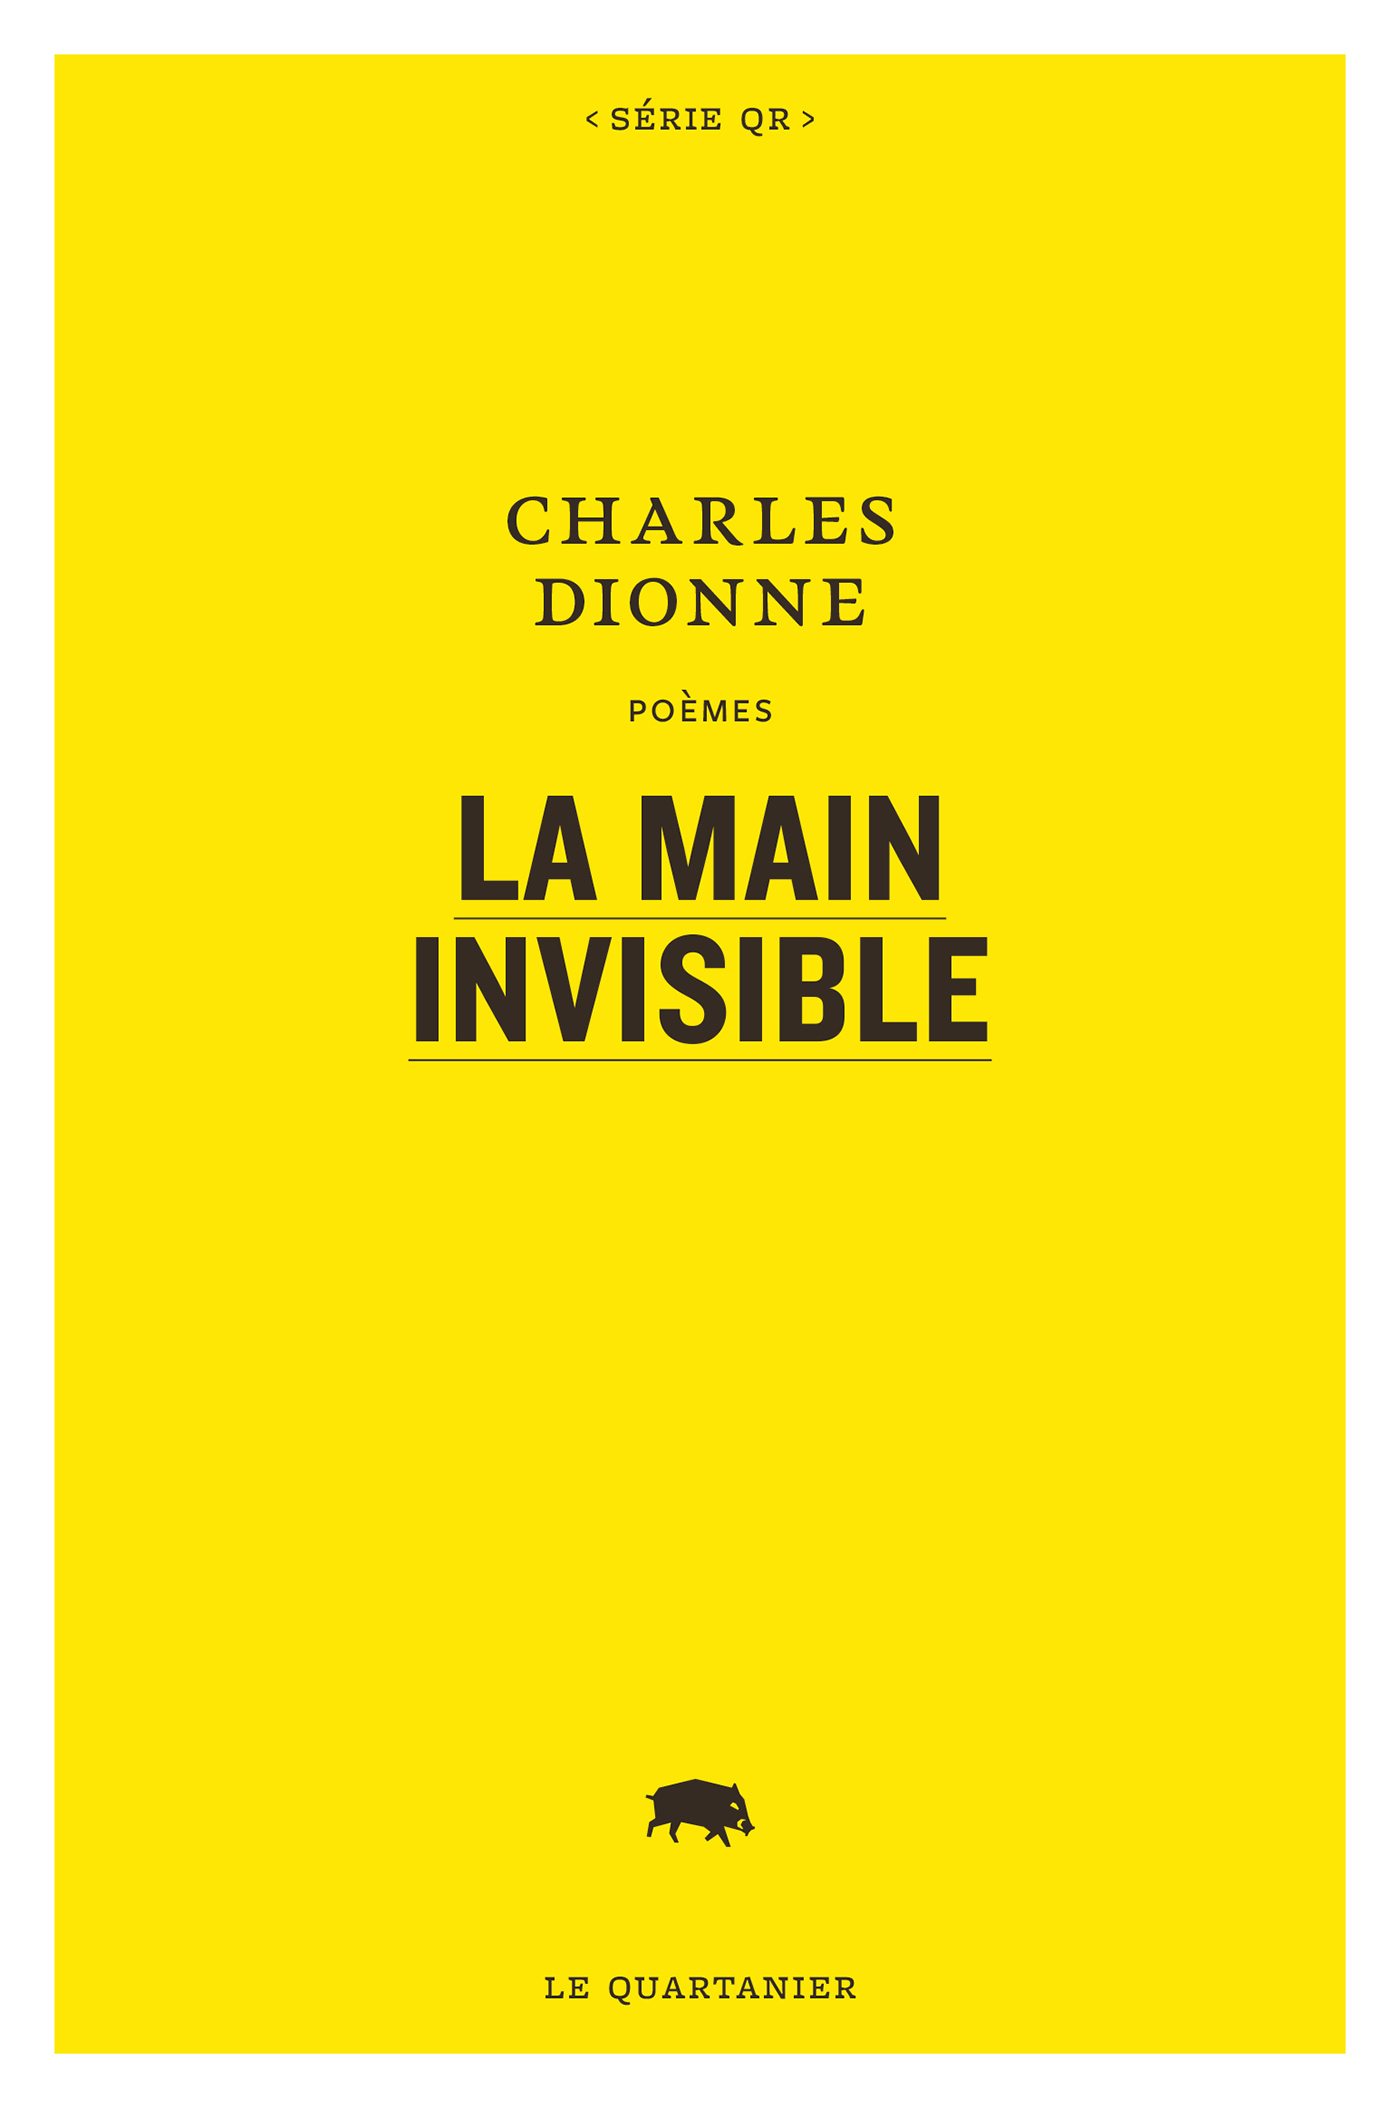 La main invisible